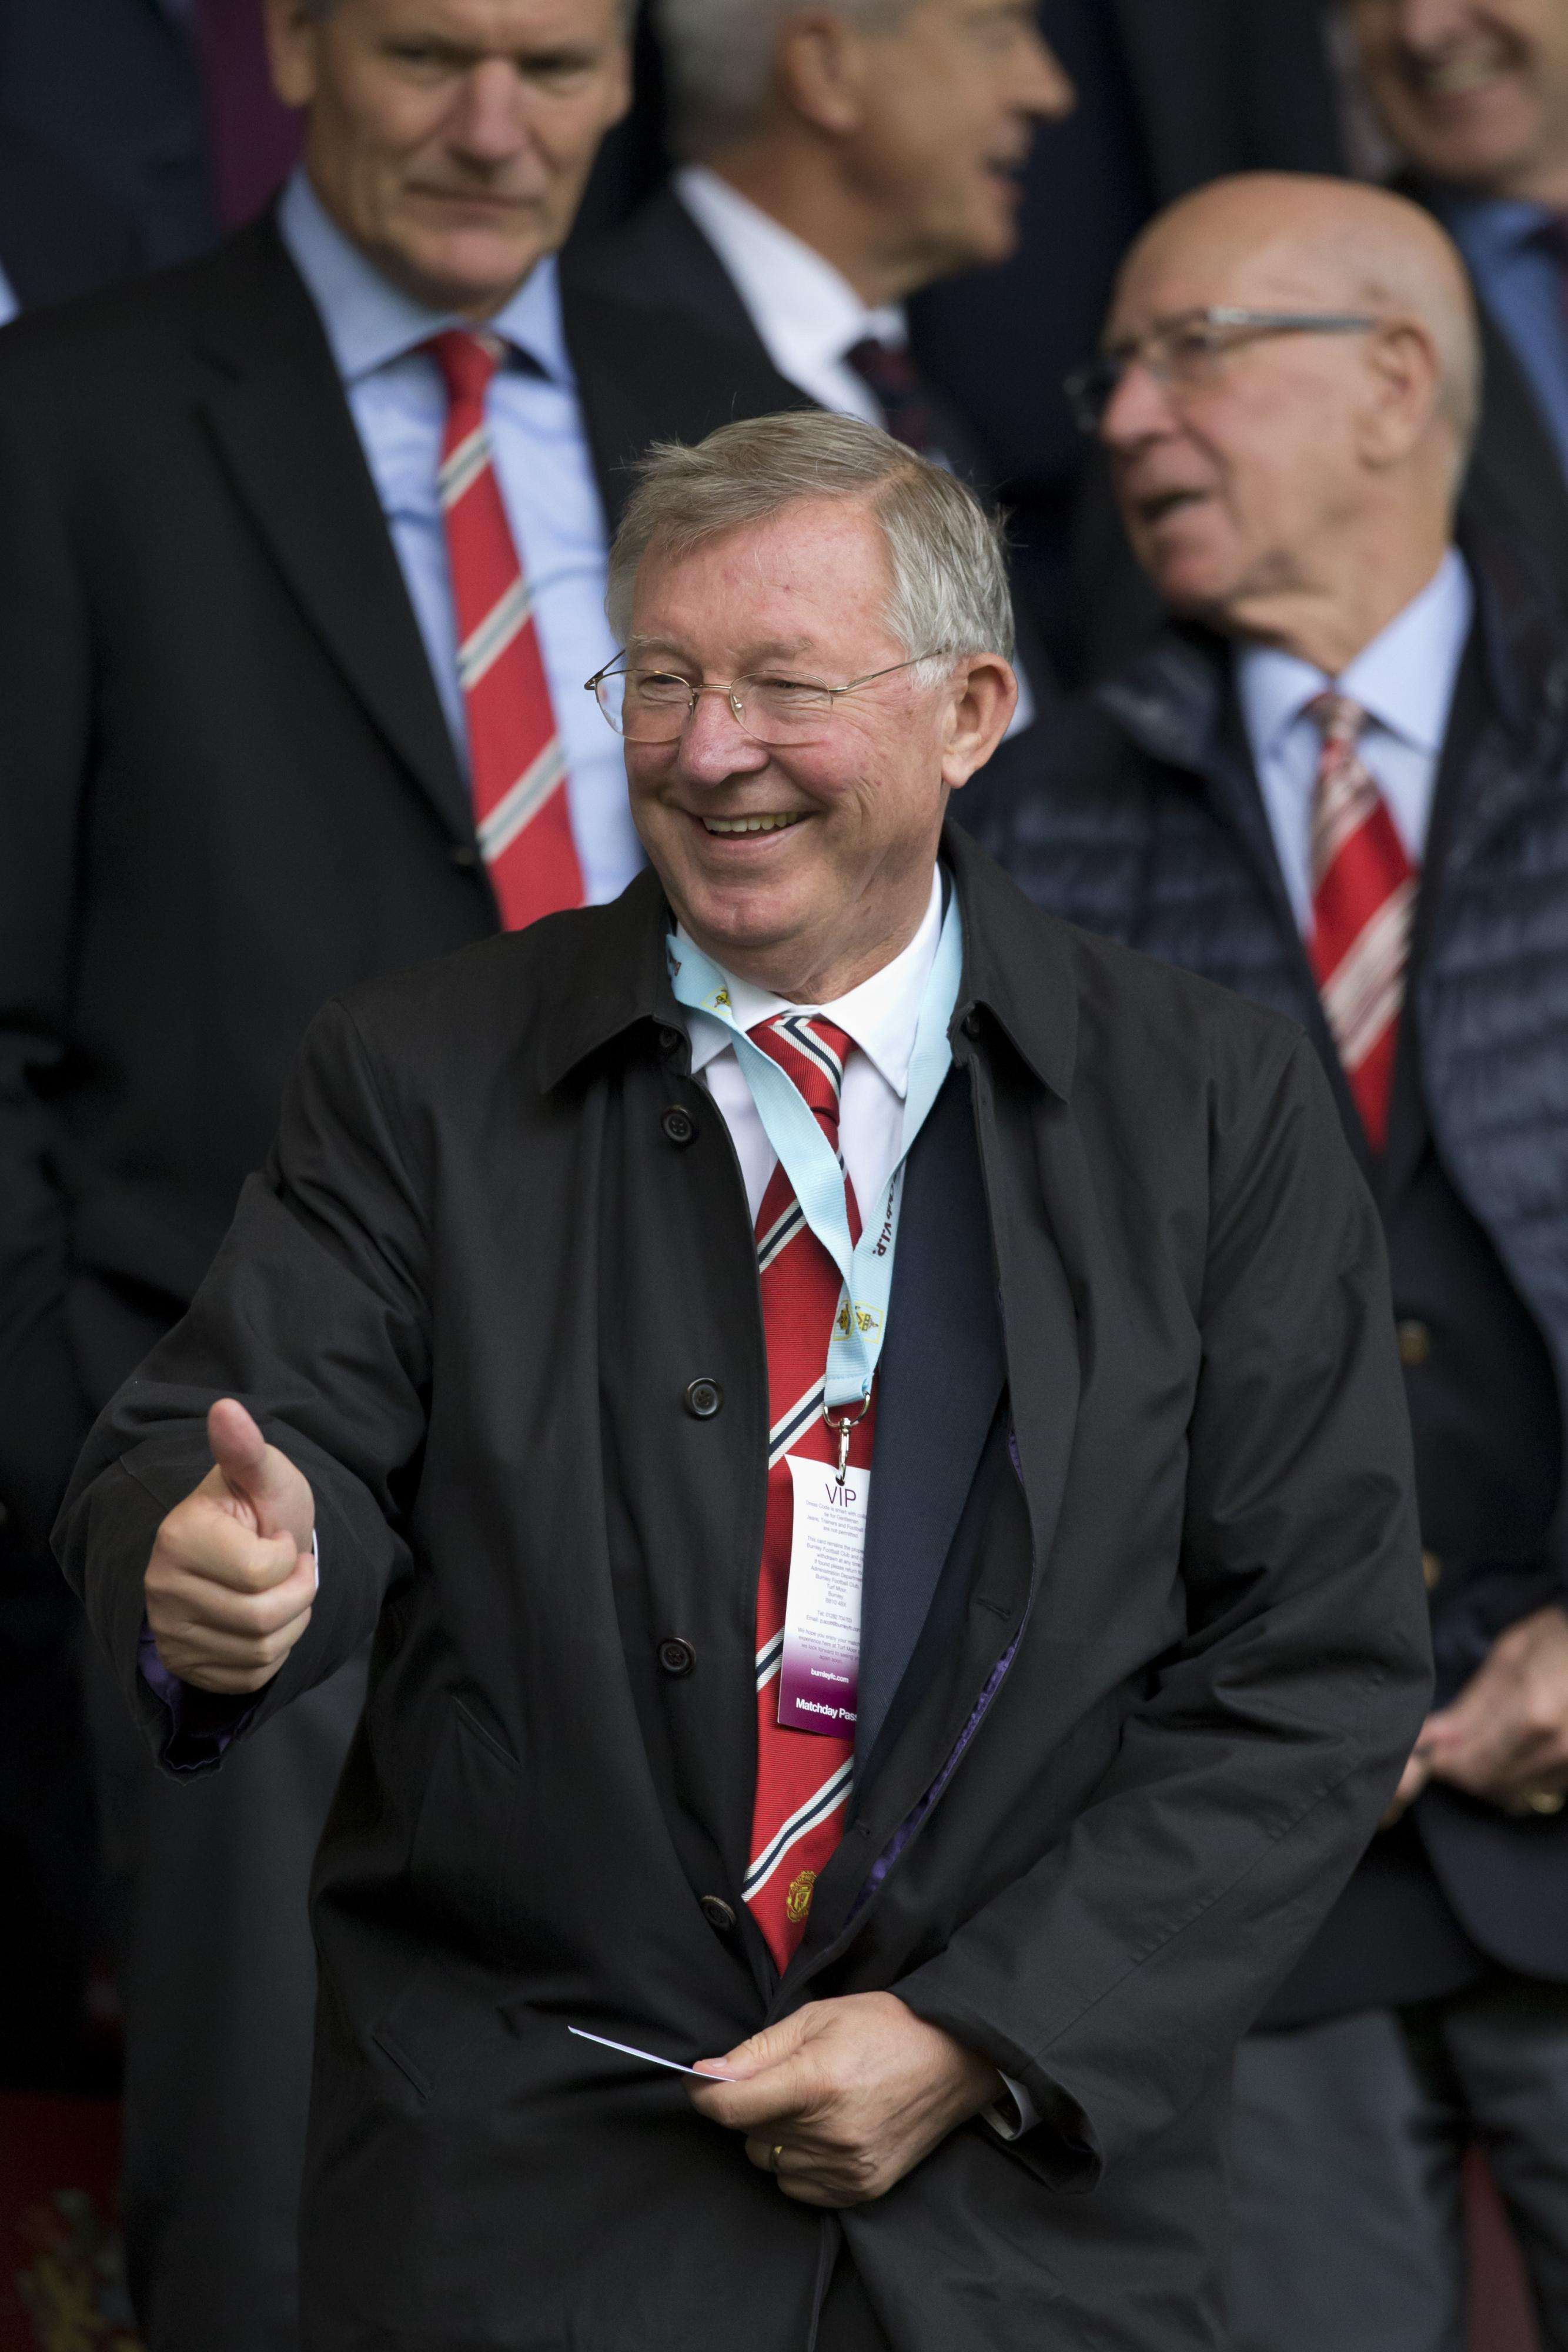 Former Manchester United manager Alex Ferguson makes a thumbs up gesture before the team's English Premier League soccer match against Burnley at Turf Moor Stadium, Burnley, England, Saturday Aug. 30, 2014. Foto: AP Images